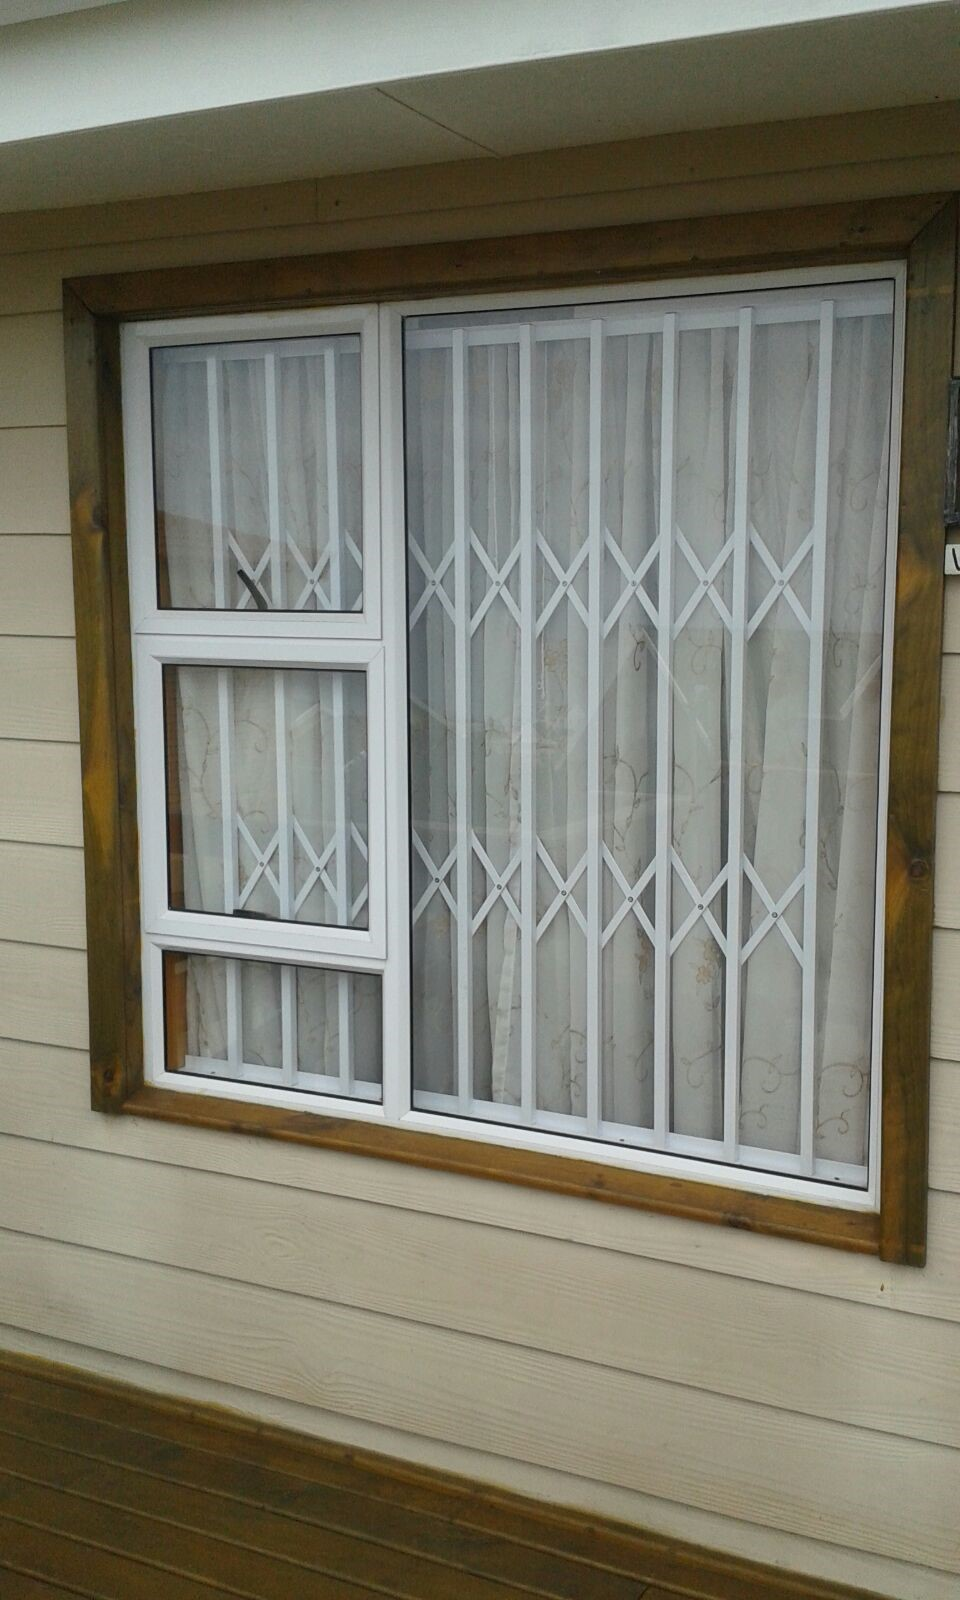 Security Bars For French Patio Doors: Burglar-Bars For Home Security